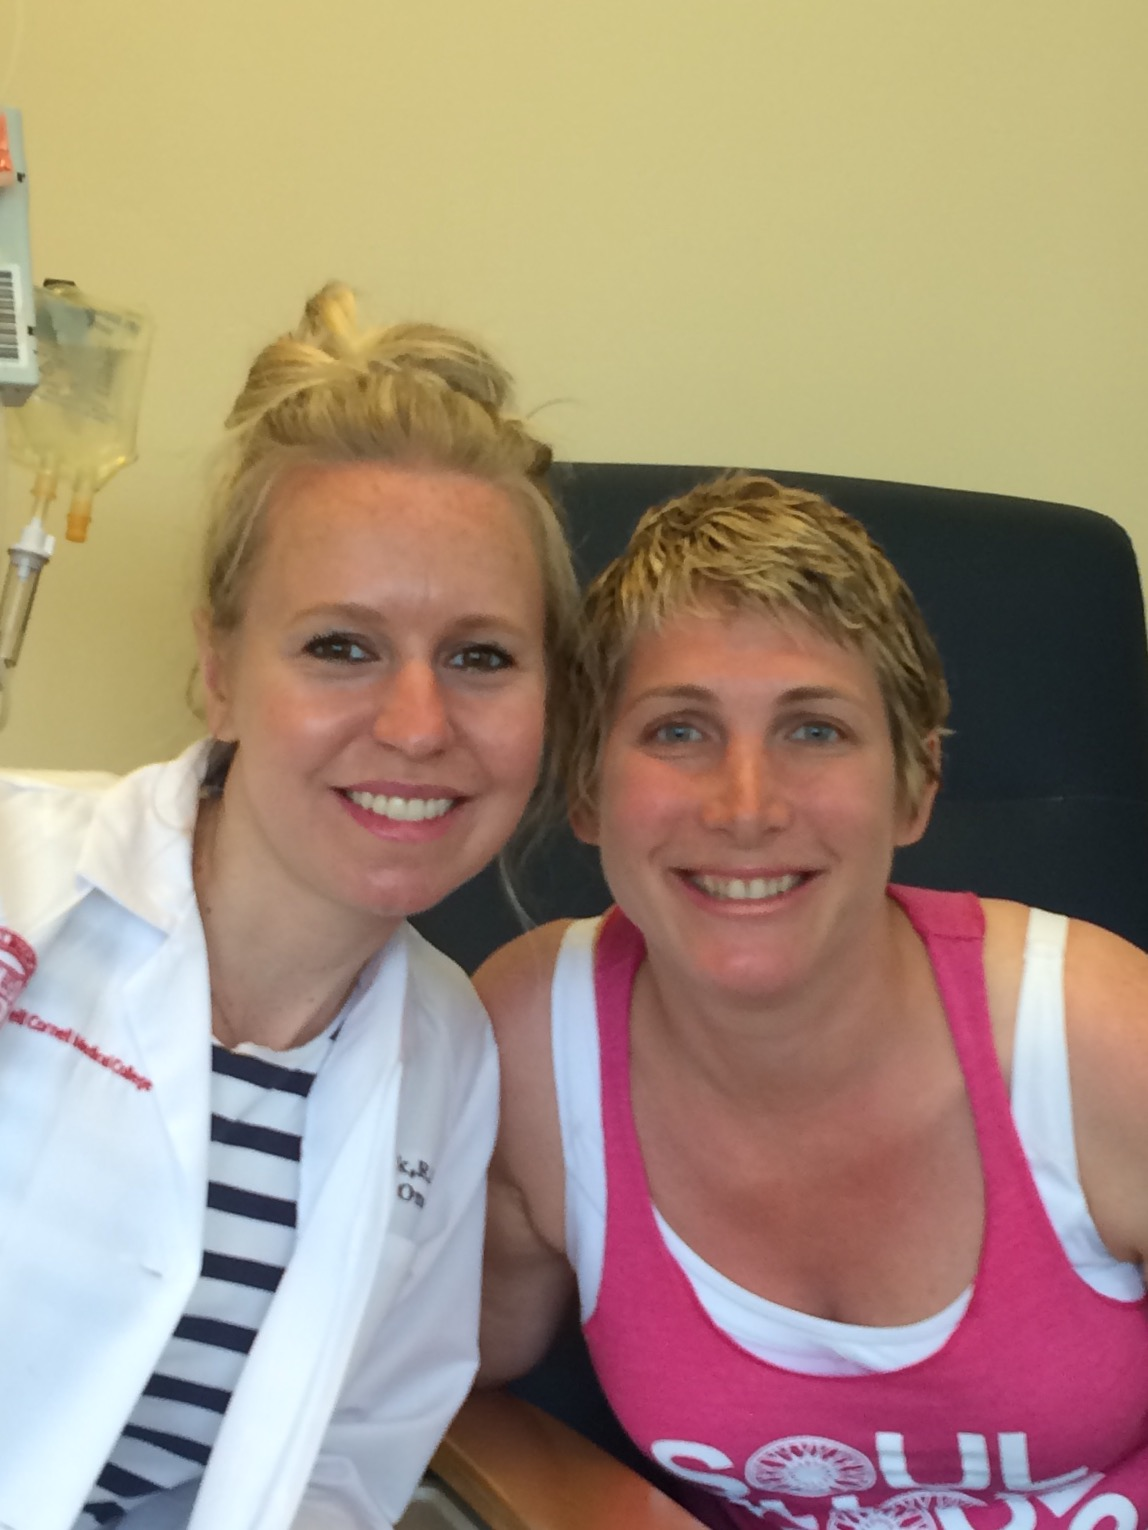 Niko with her nurse during chemotherapy.